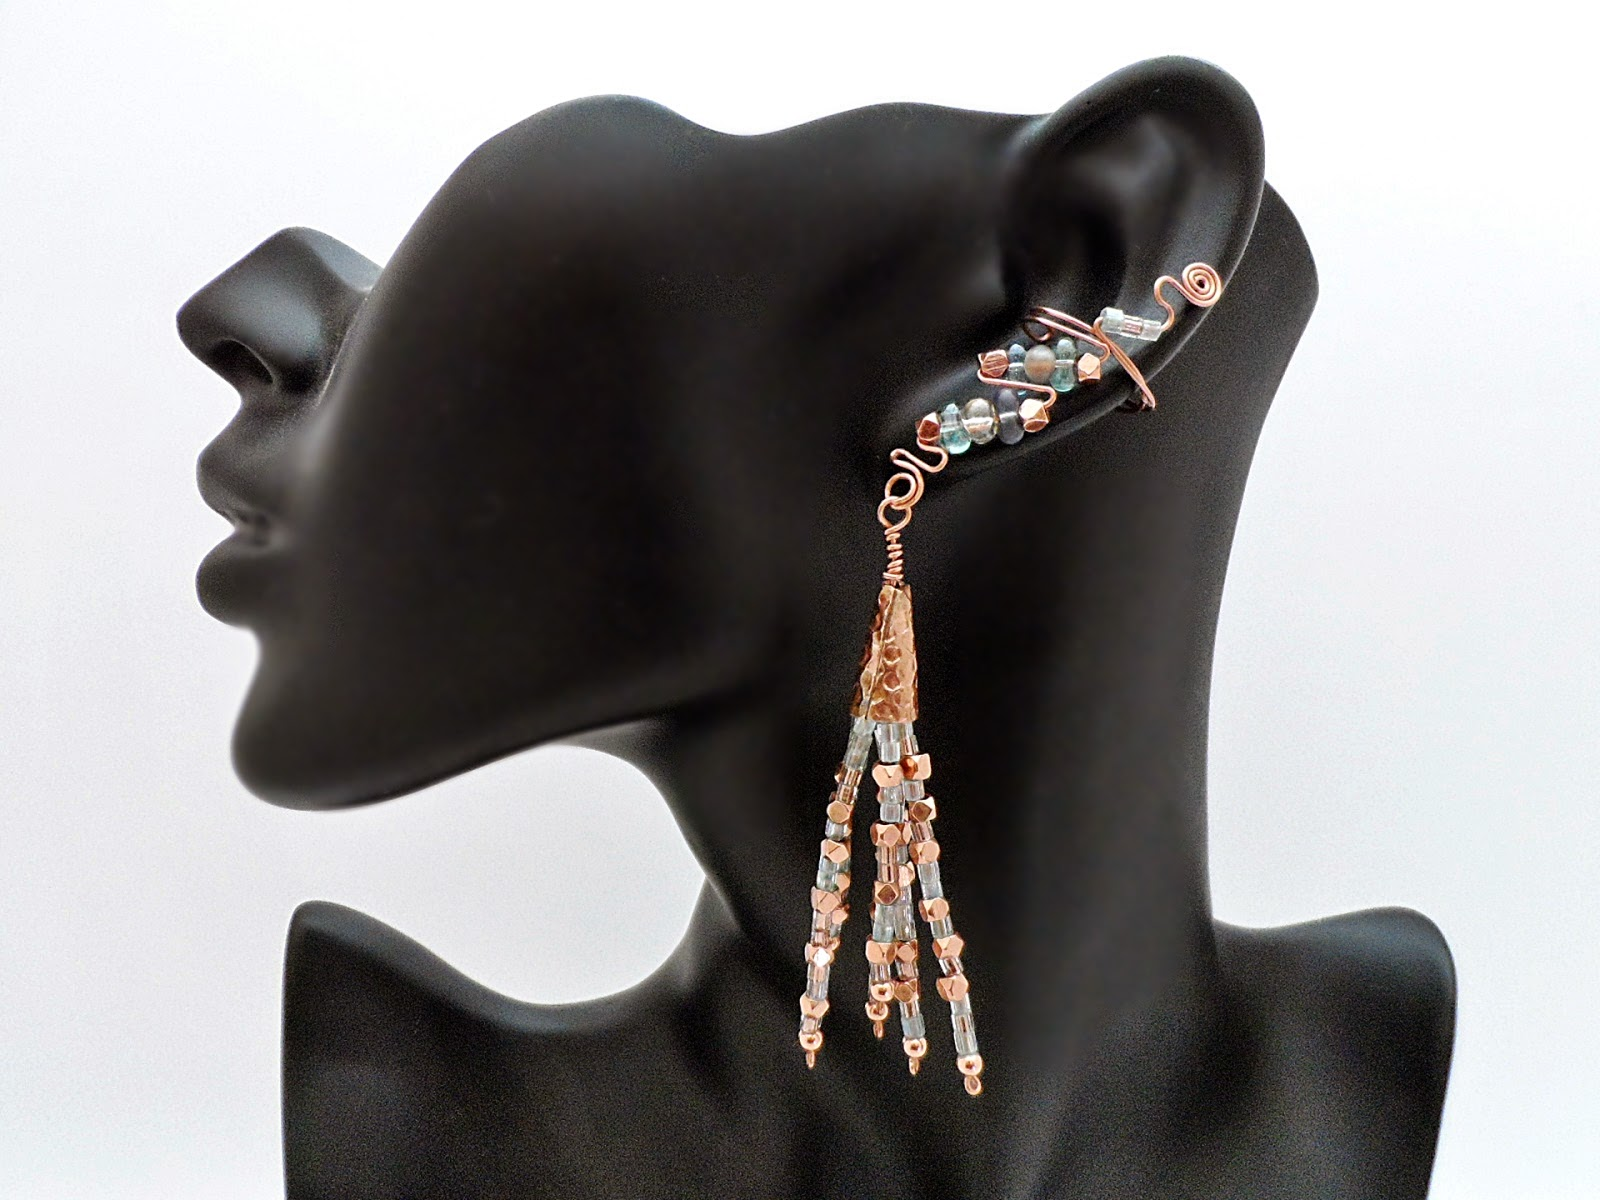 Dramatic Drop Ear Cuffs featuring Copper and Crystals